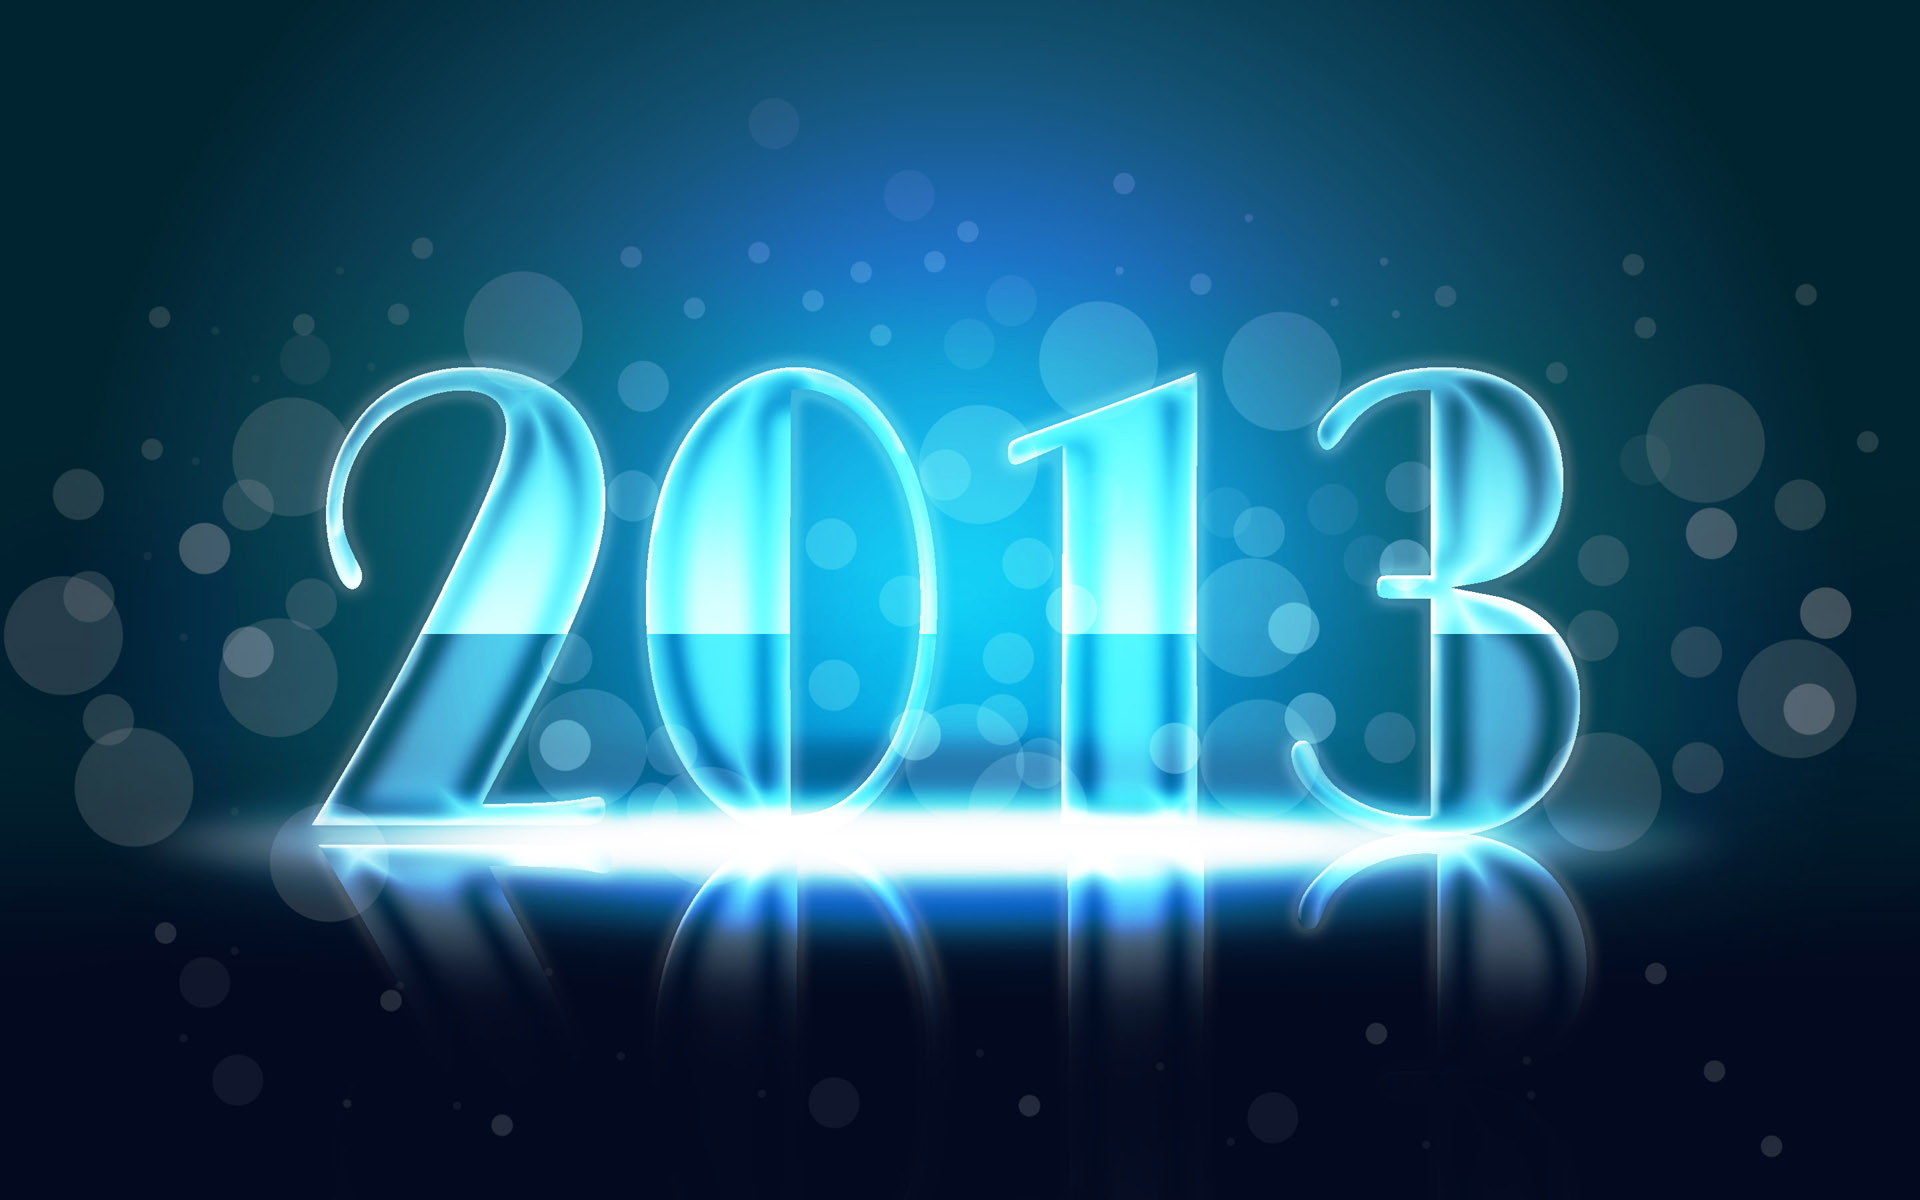 Happy 2013 Wallpaper HD 1920×1200